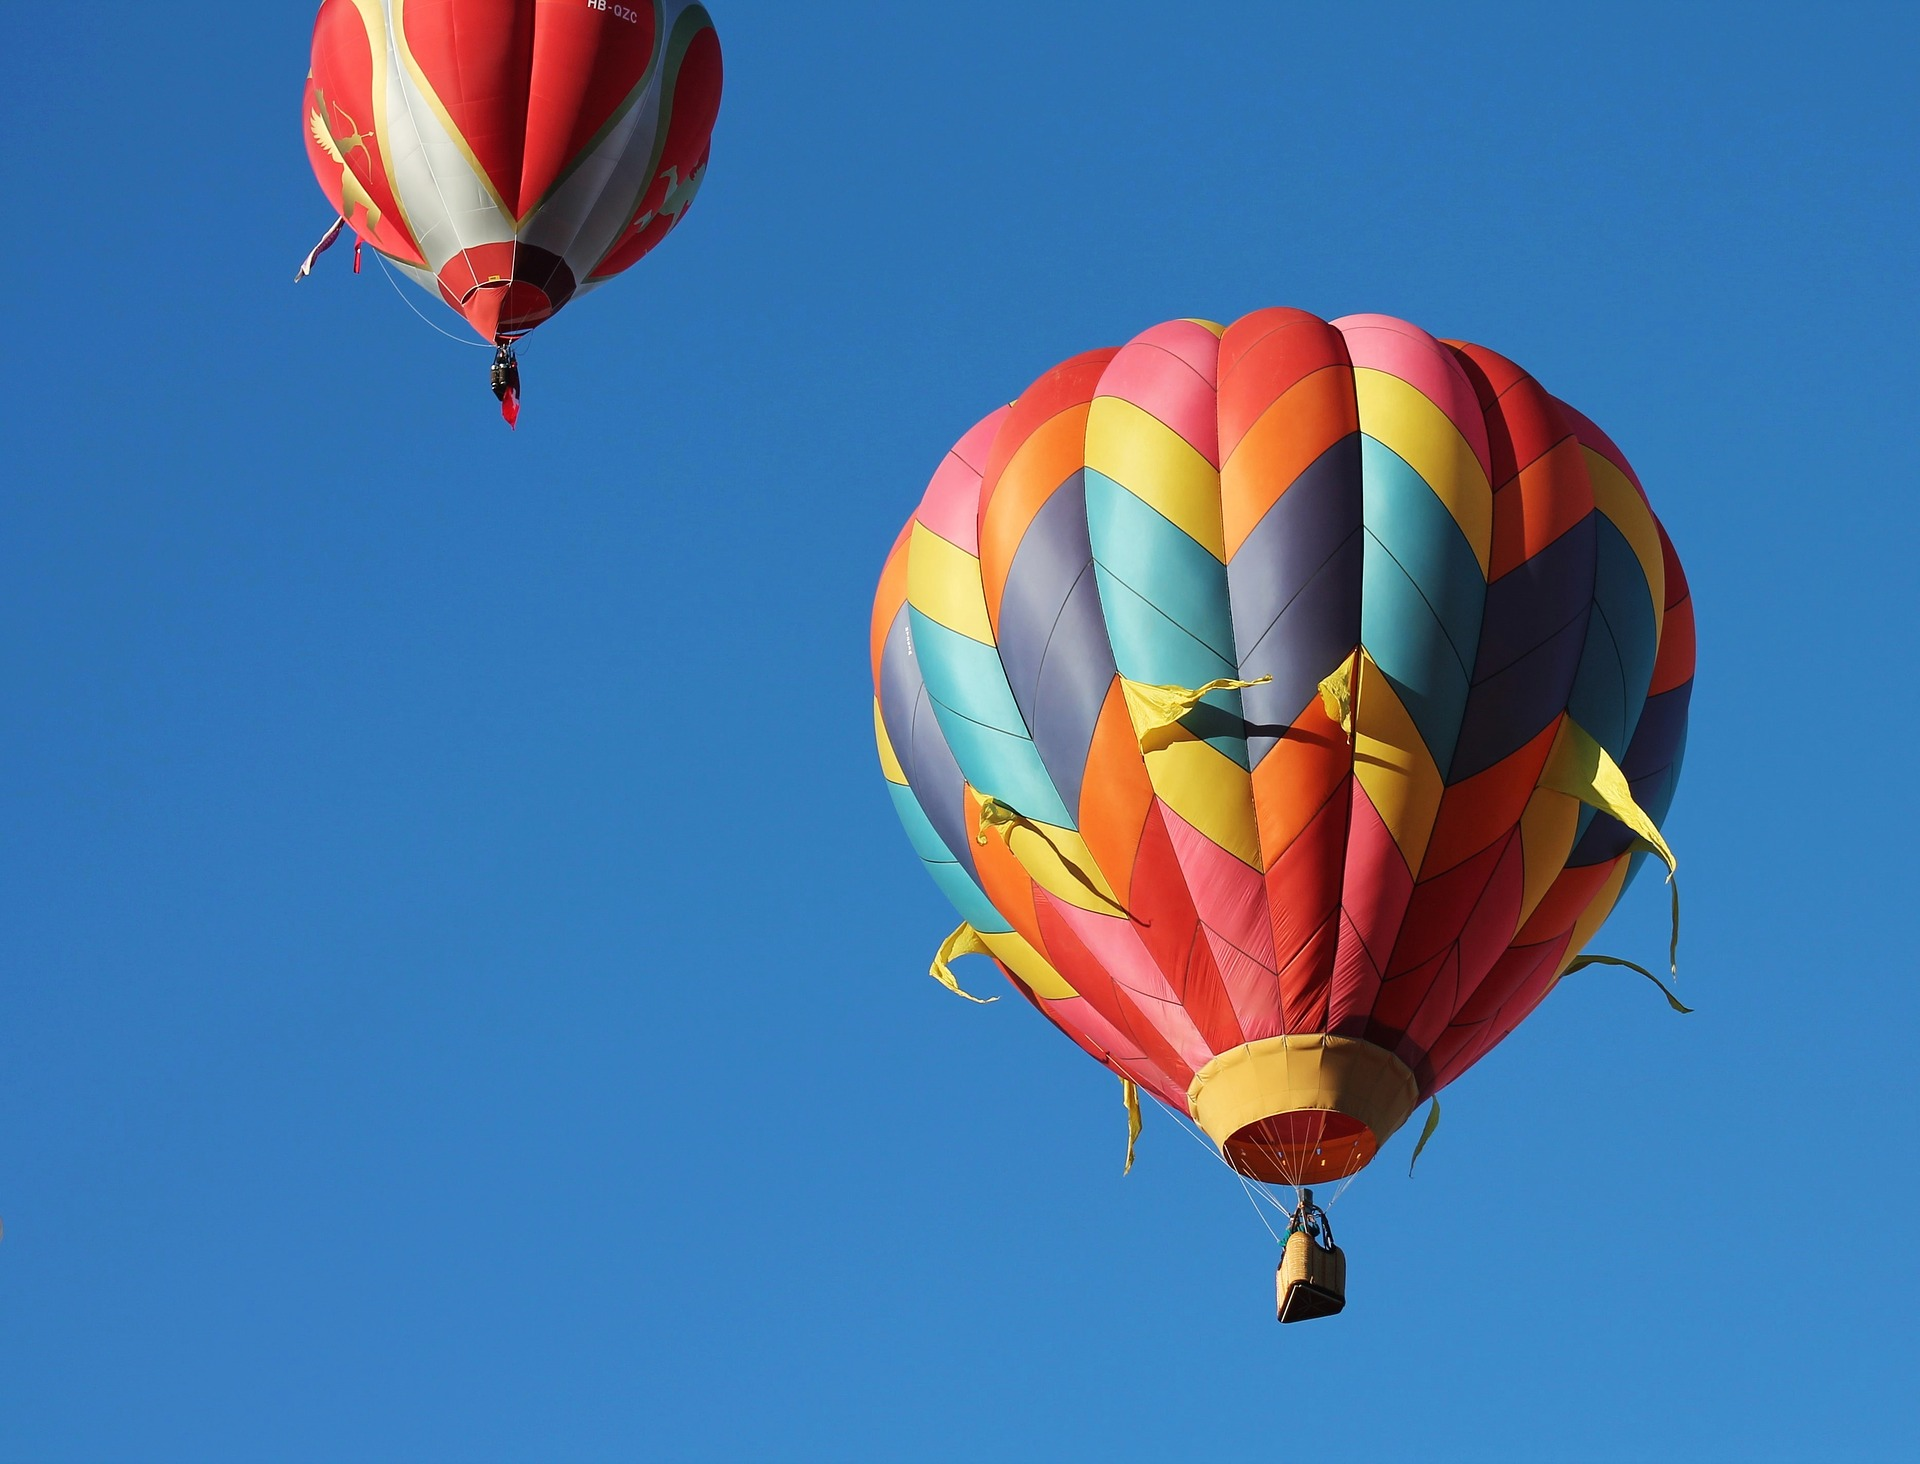 Hot air balloons, Albuquerque, NM I Outdoorsy RV Rental Marketplace